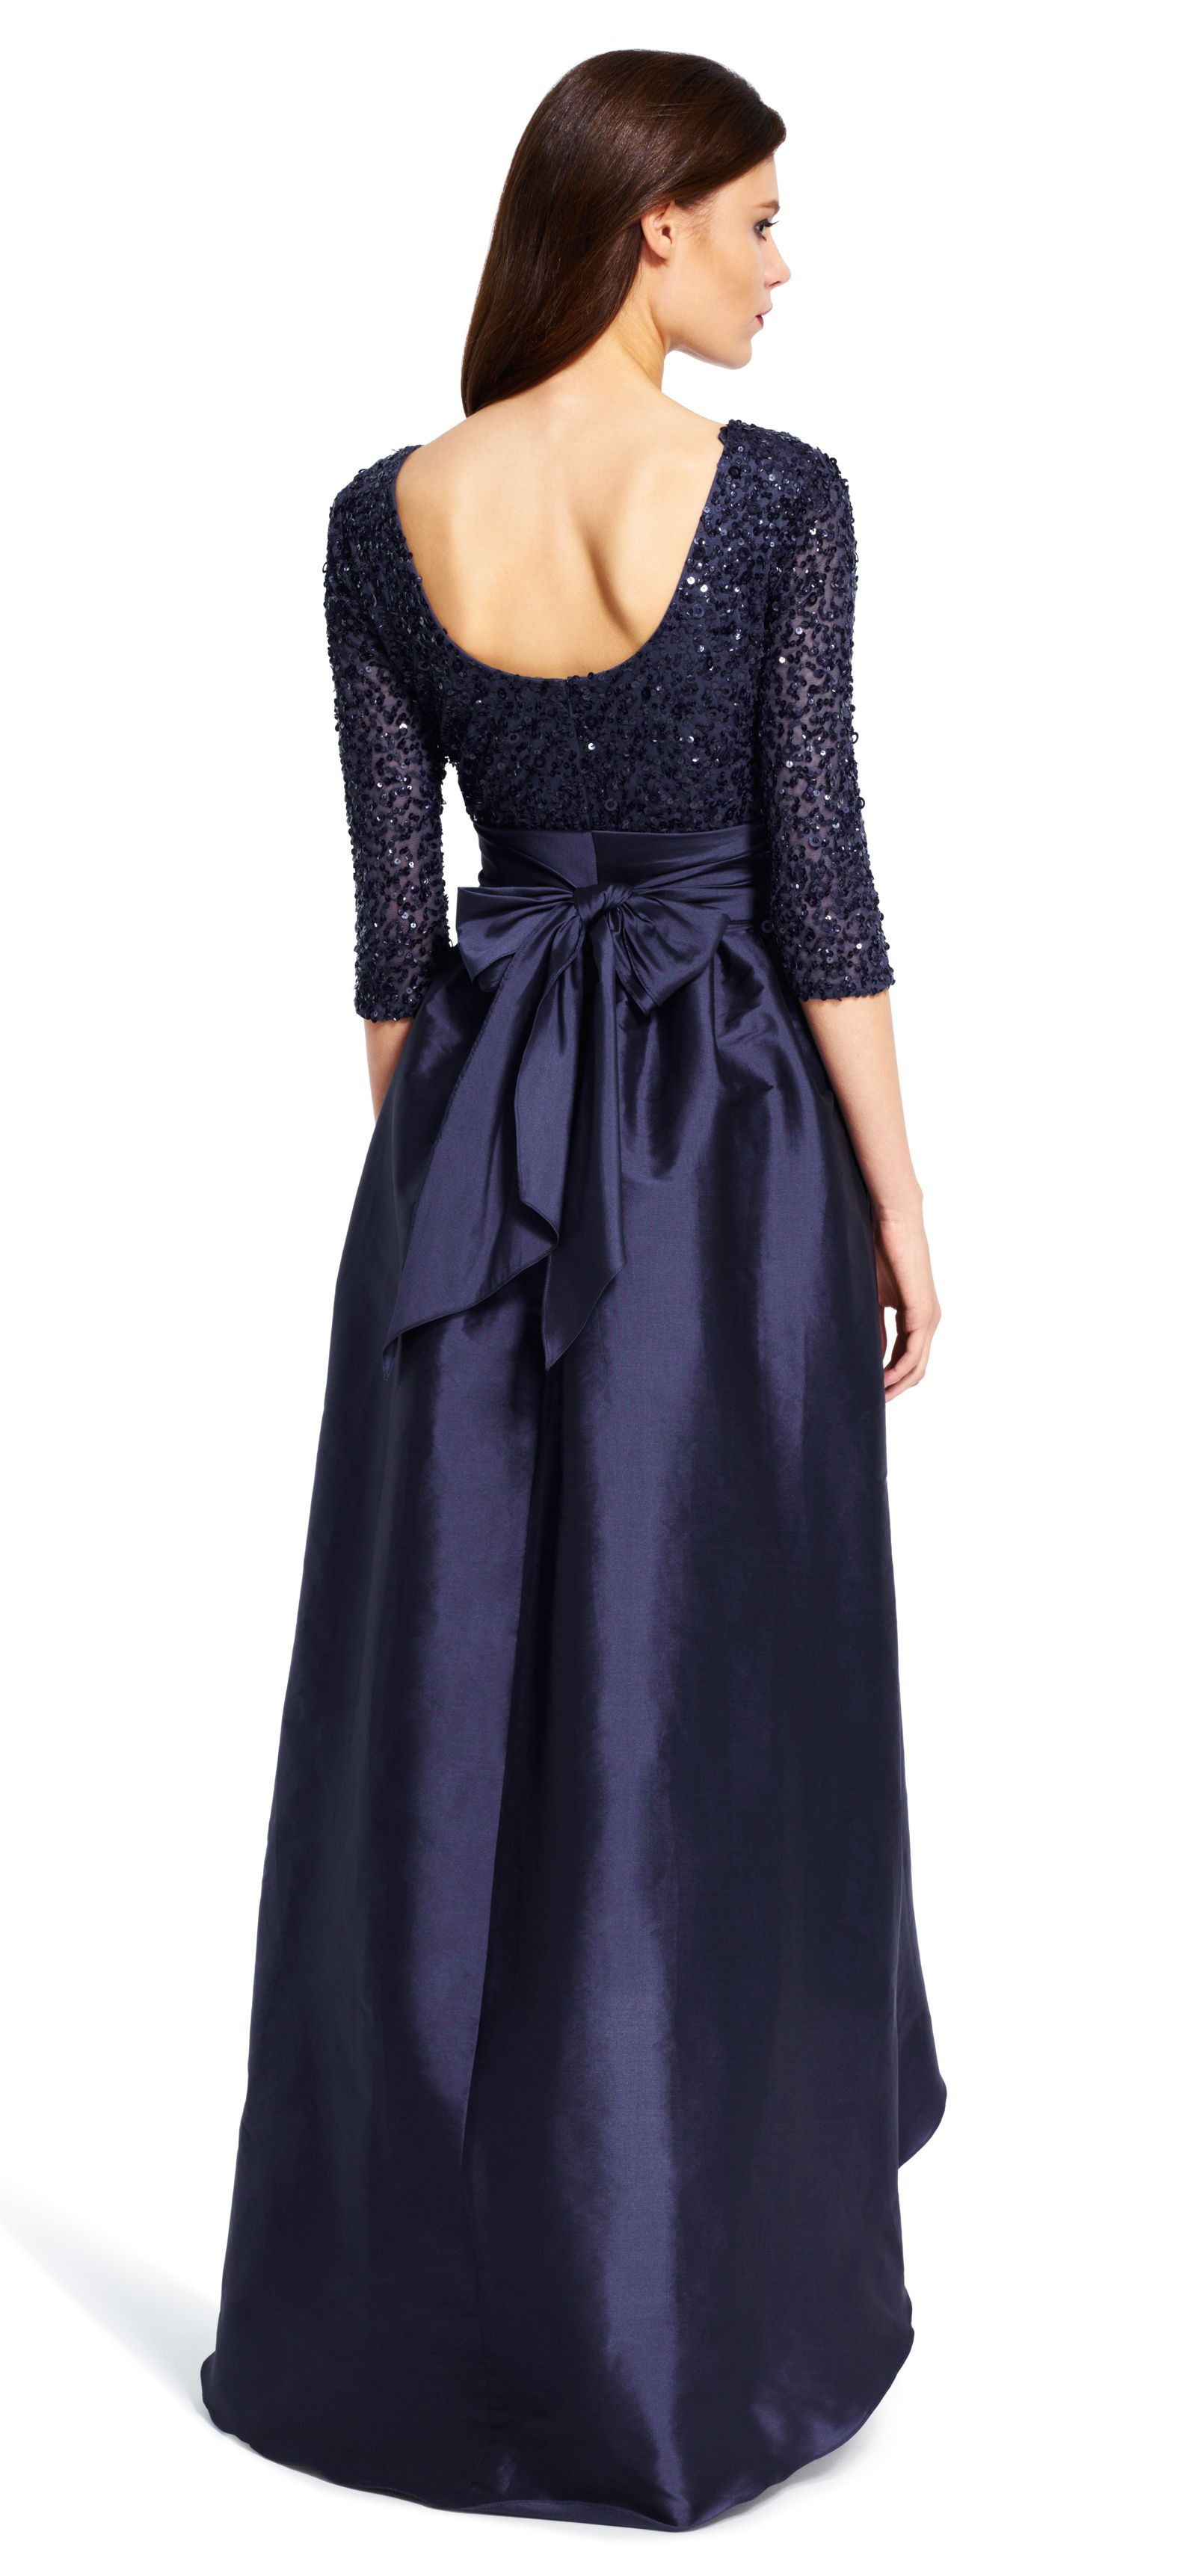 Taffeta Ball Gown with Beaded Bodice | Adrianna papell, Ball gowns ...